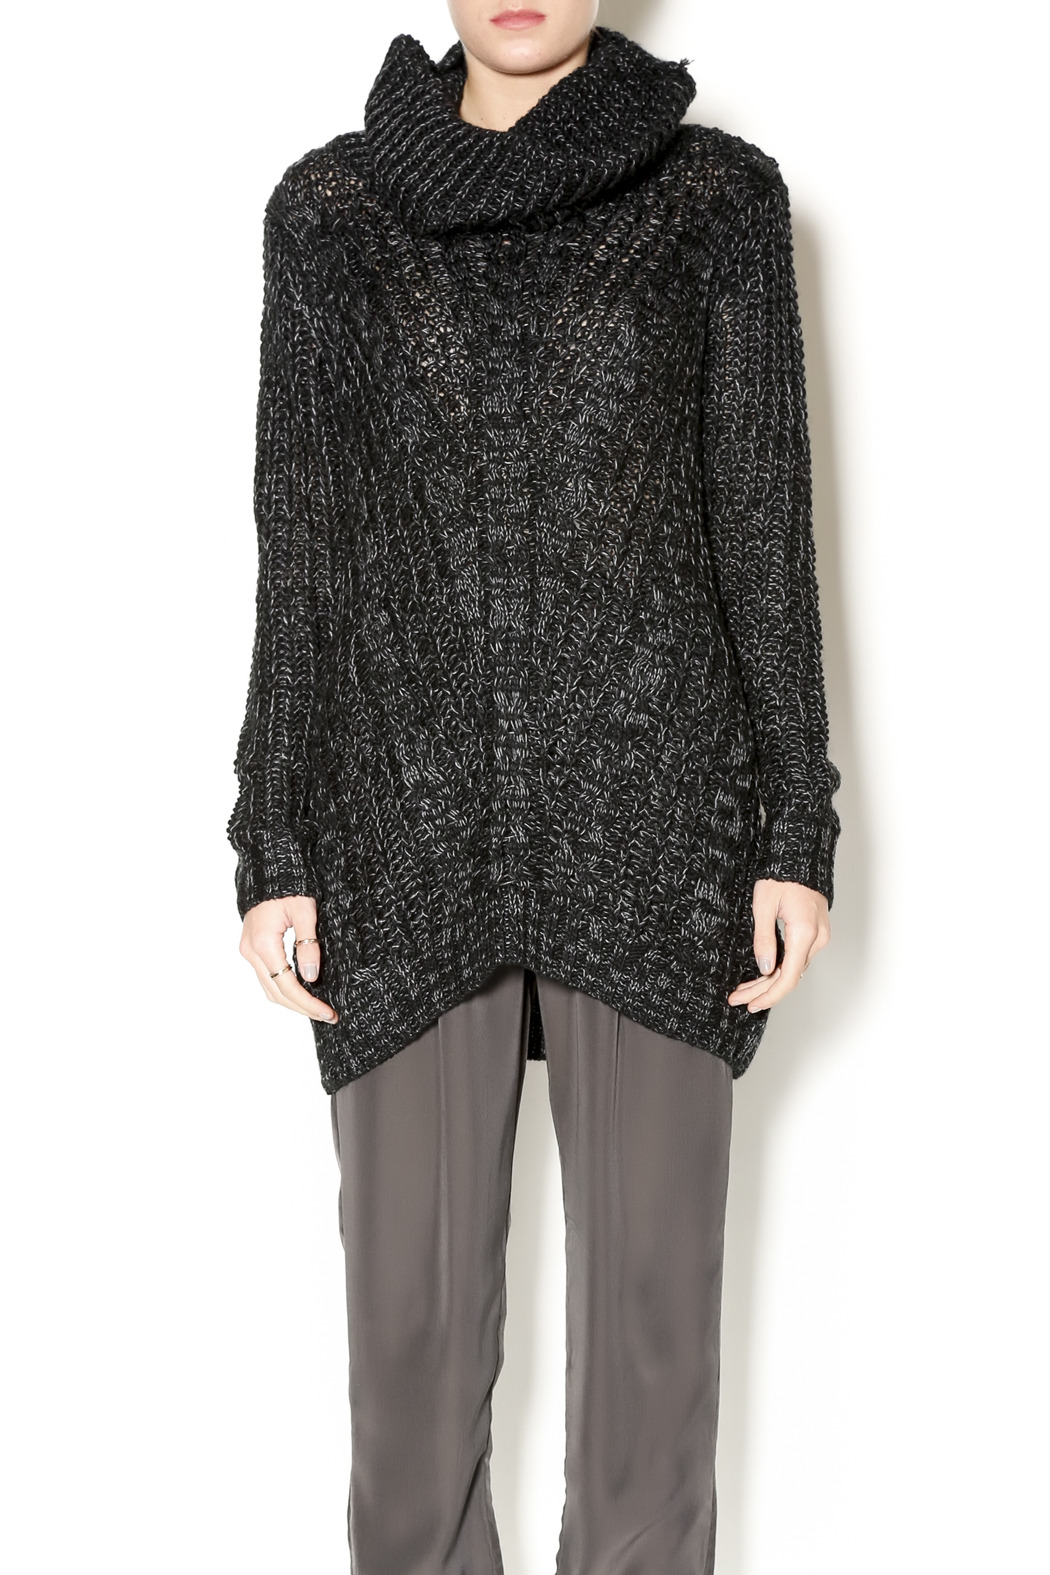 Cecico Long Knit Sweater - Main Image